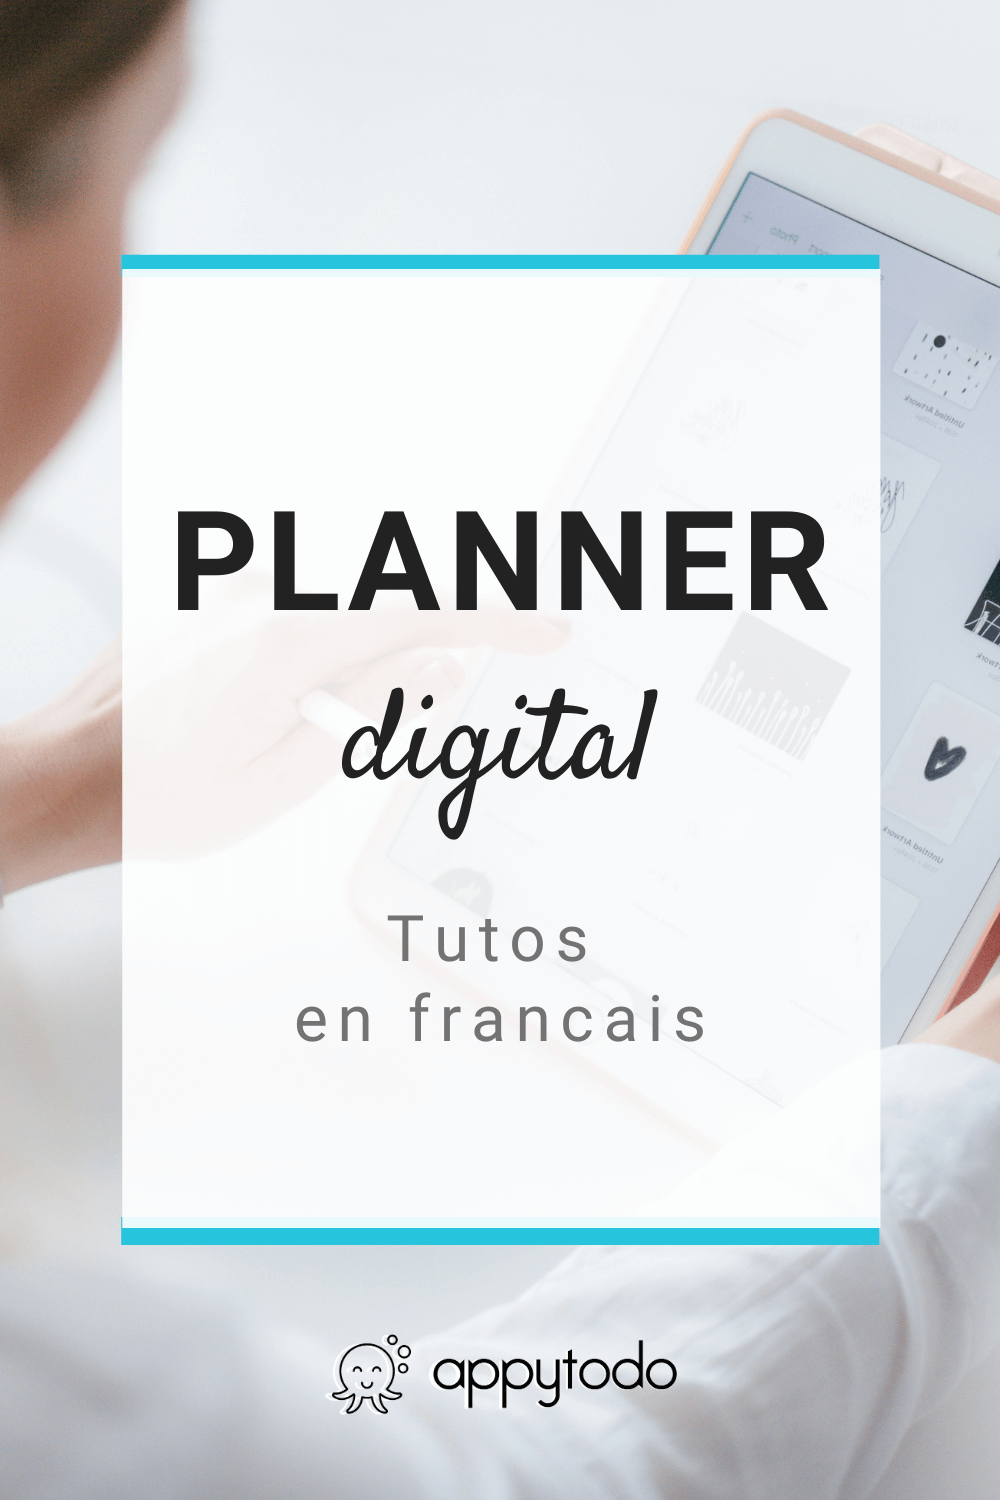 Débutant dans la planification digitale ? Découvrez les tutoriels en français de appytodo. Apprenez à importez votre planner sur votre tablette, utiliser votre application d'annotation Noteshelf, utiliser des stickers ou encore changer de couverture. #debutant #plannerdigital #francais via @catherineappytodo